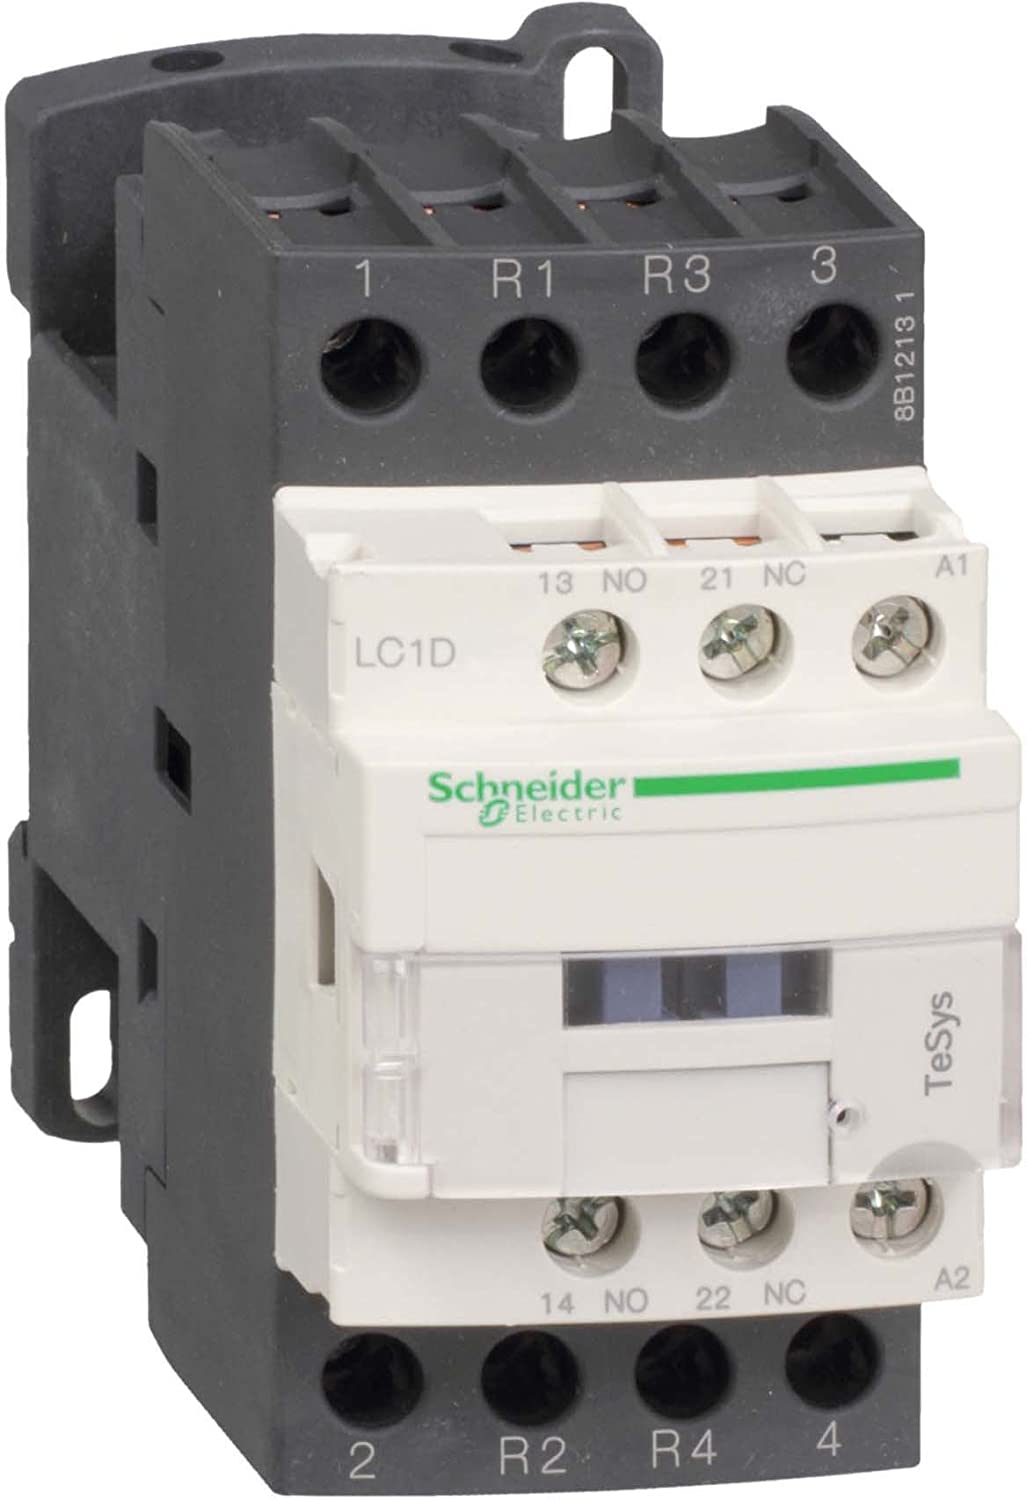 Schneider Electric lc1d098p7 TeSys D Contactor, 4P, 2 NA + 2 NC, 440 V AC-1, 230 Vac Coil, 20 A 2NA + 2NC 440V AC-1 230Vac Coil 20A Schneider Electric SE